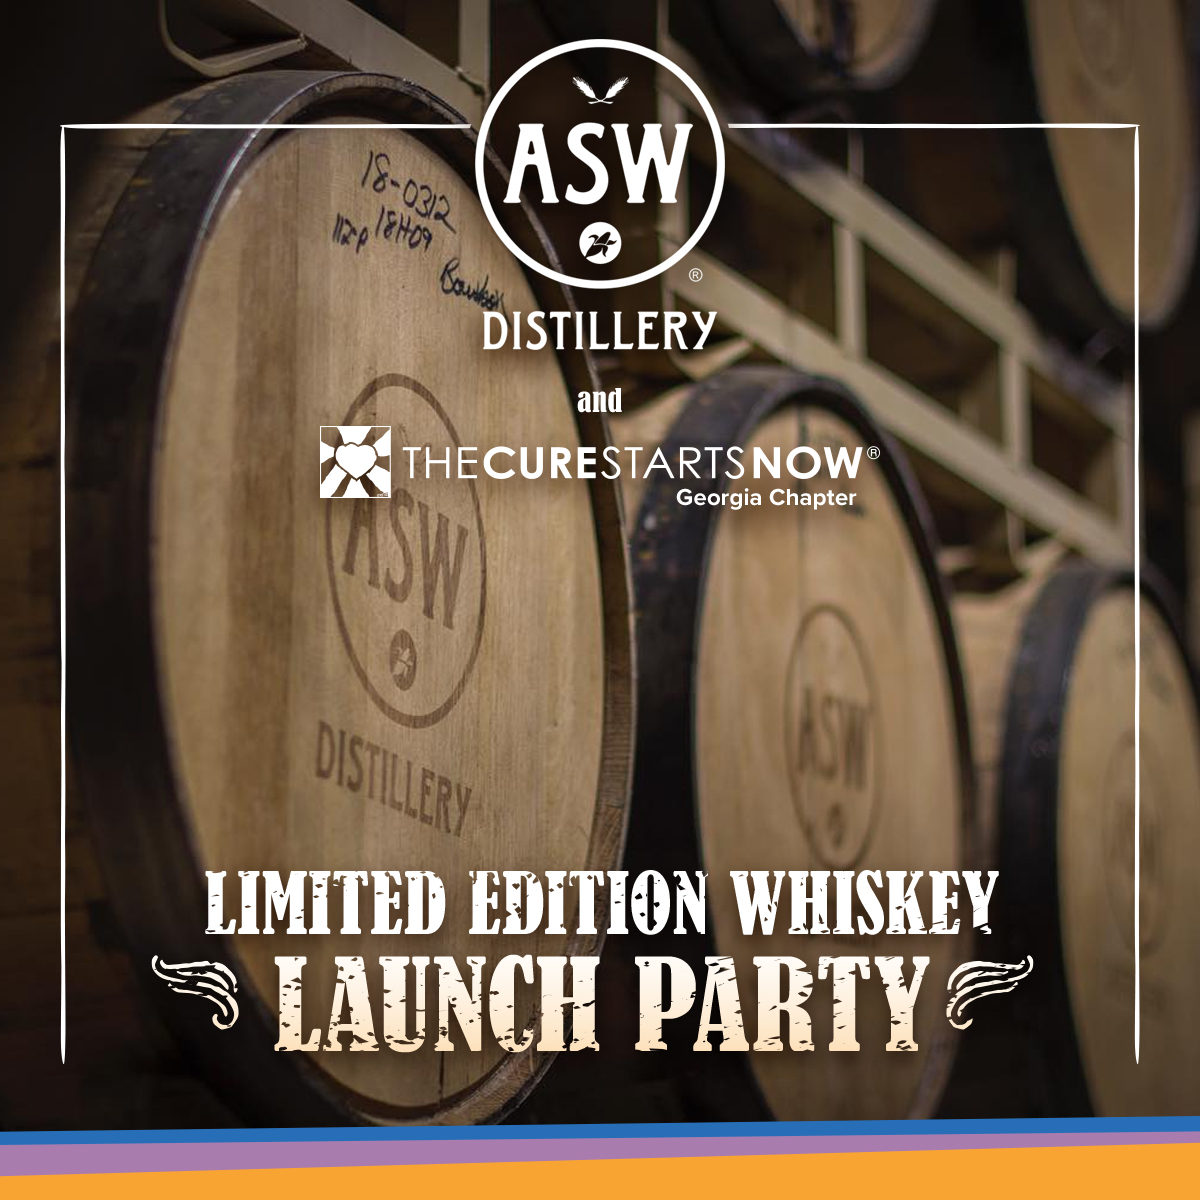 ASW's Cure Starts Now Whiskey Launch Party